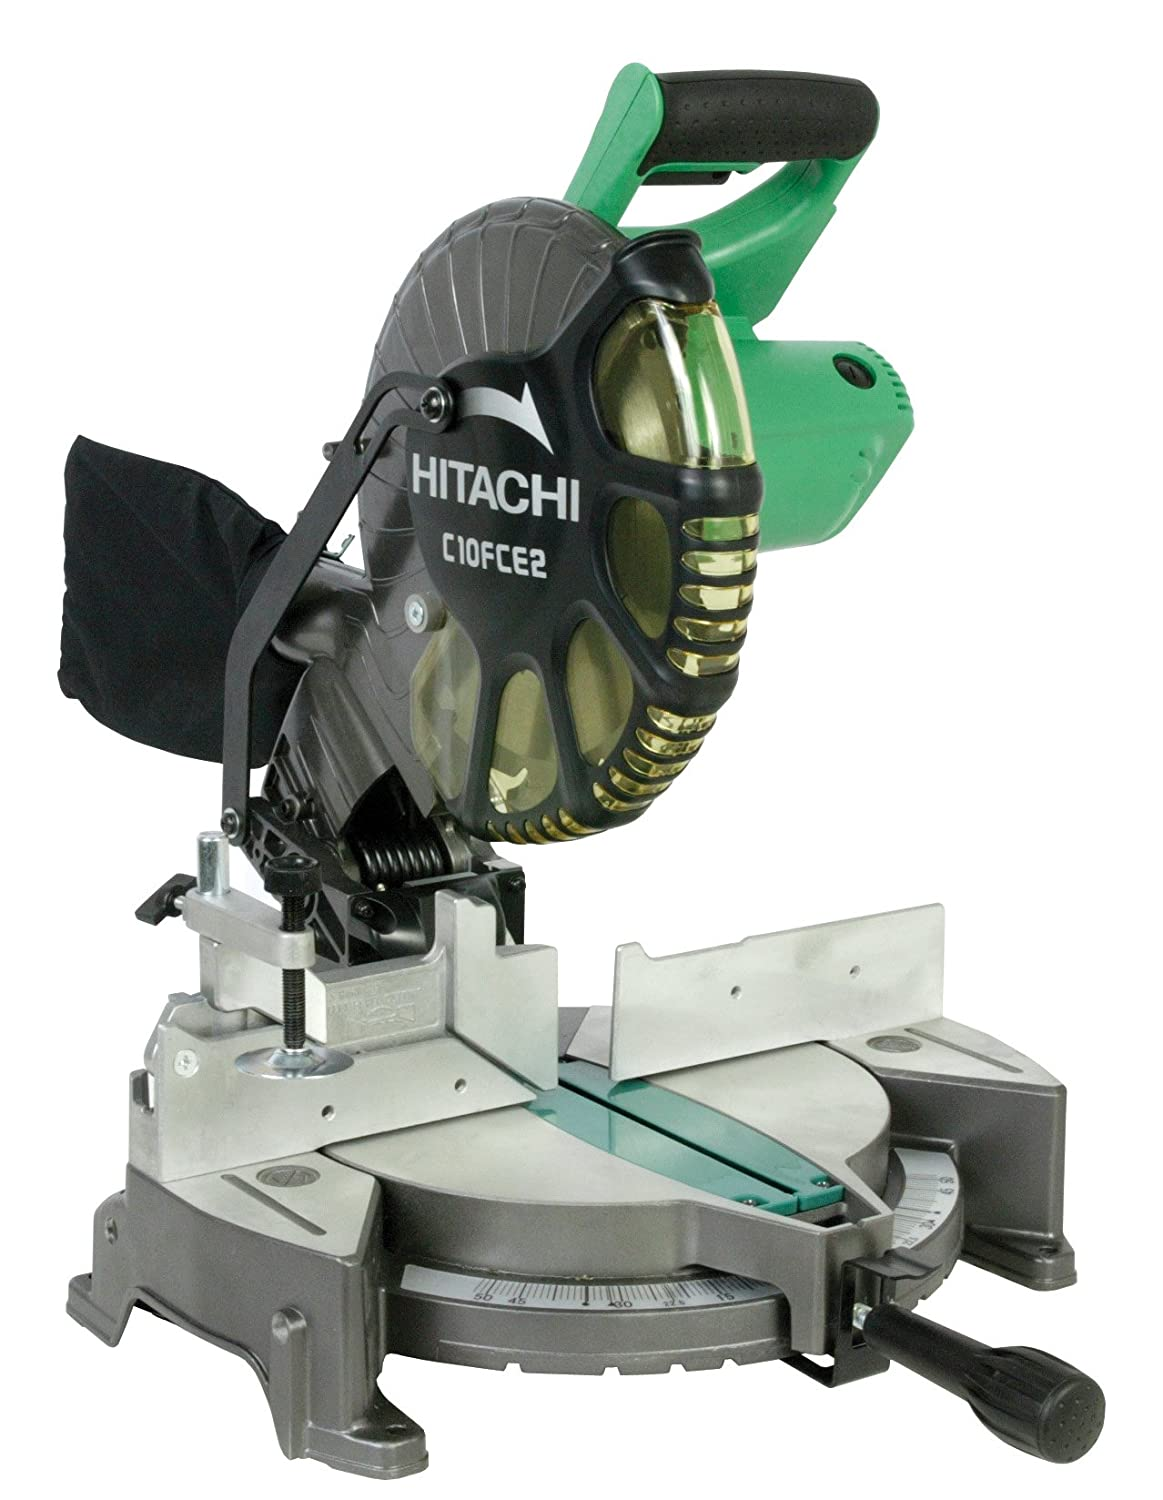 Hitachi C10FCE2 Mitre Saw 255mm